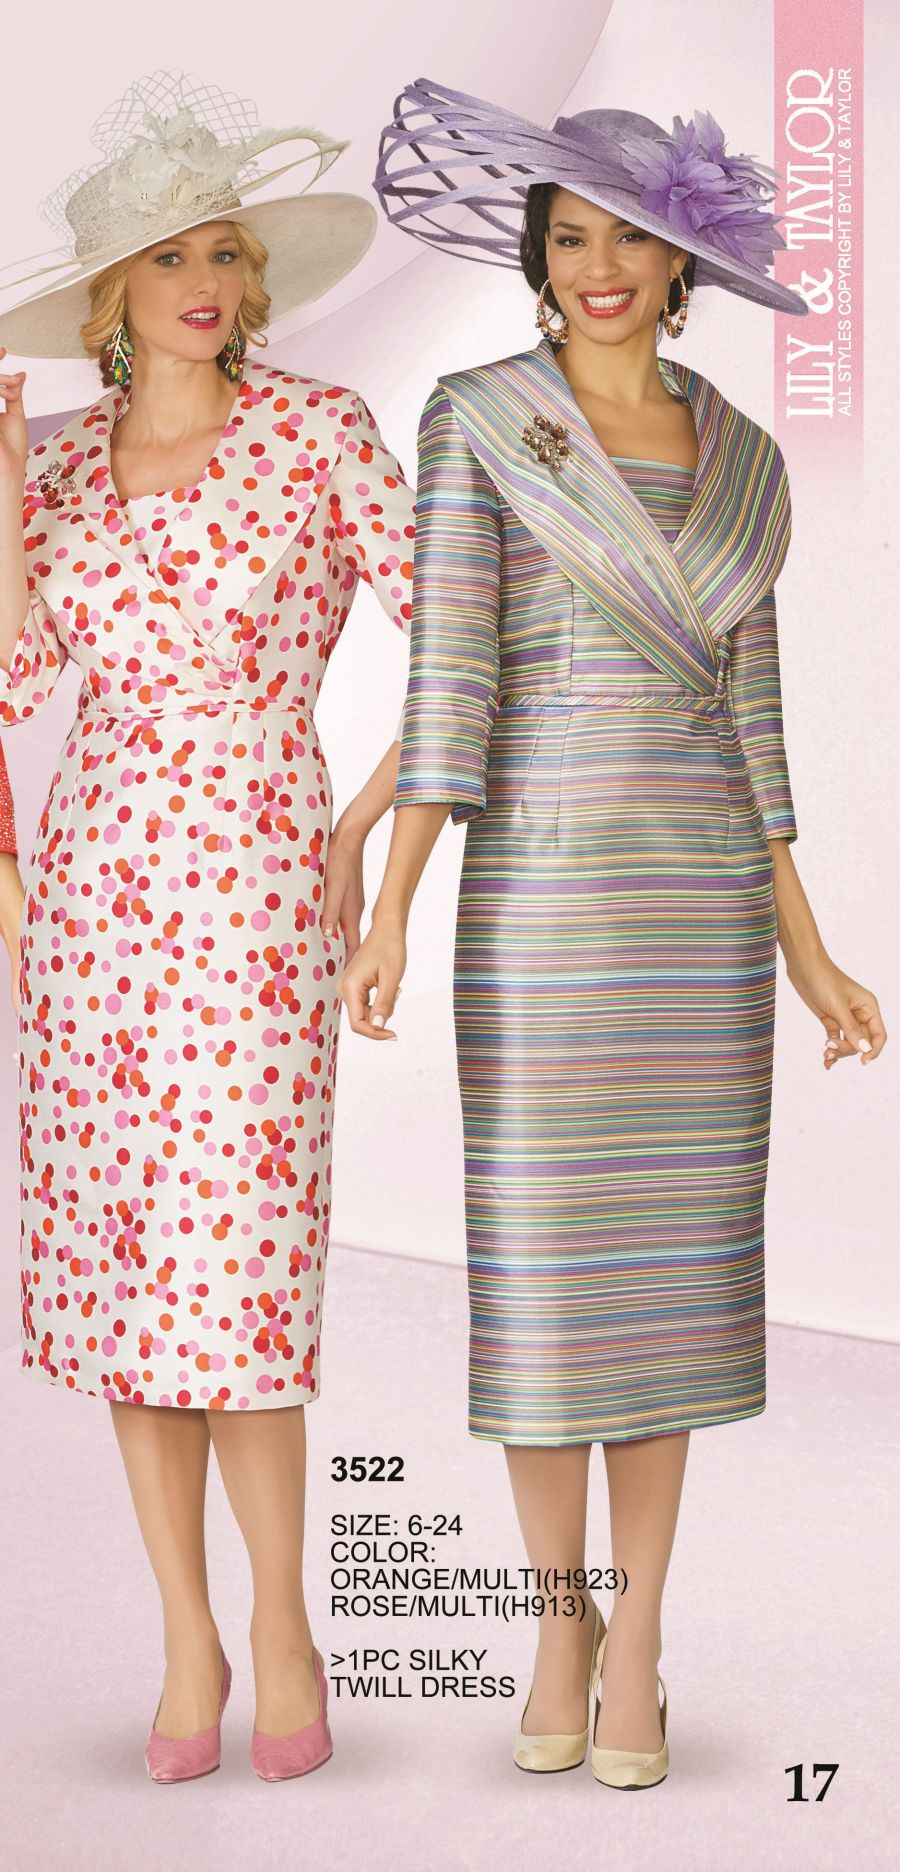 Lily And Taylor 3522 Silky Twill Print Church Dress